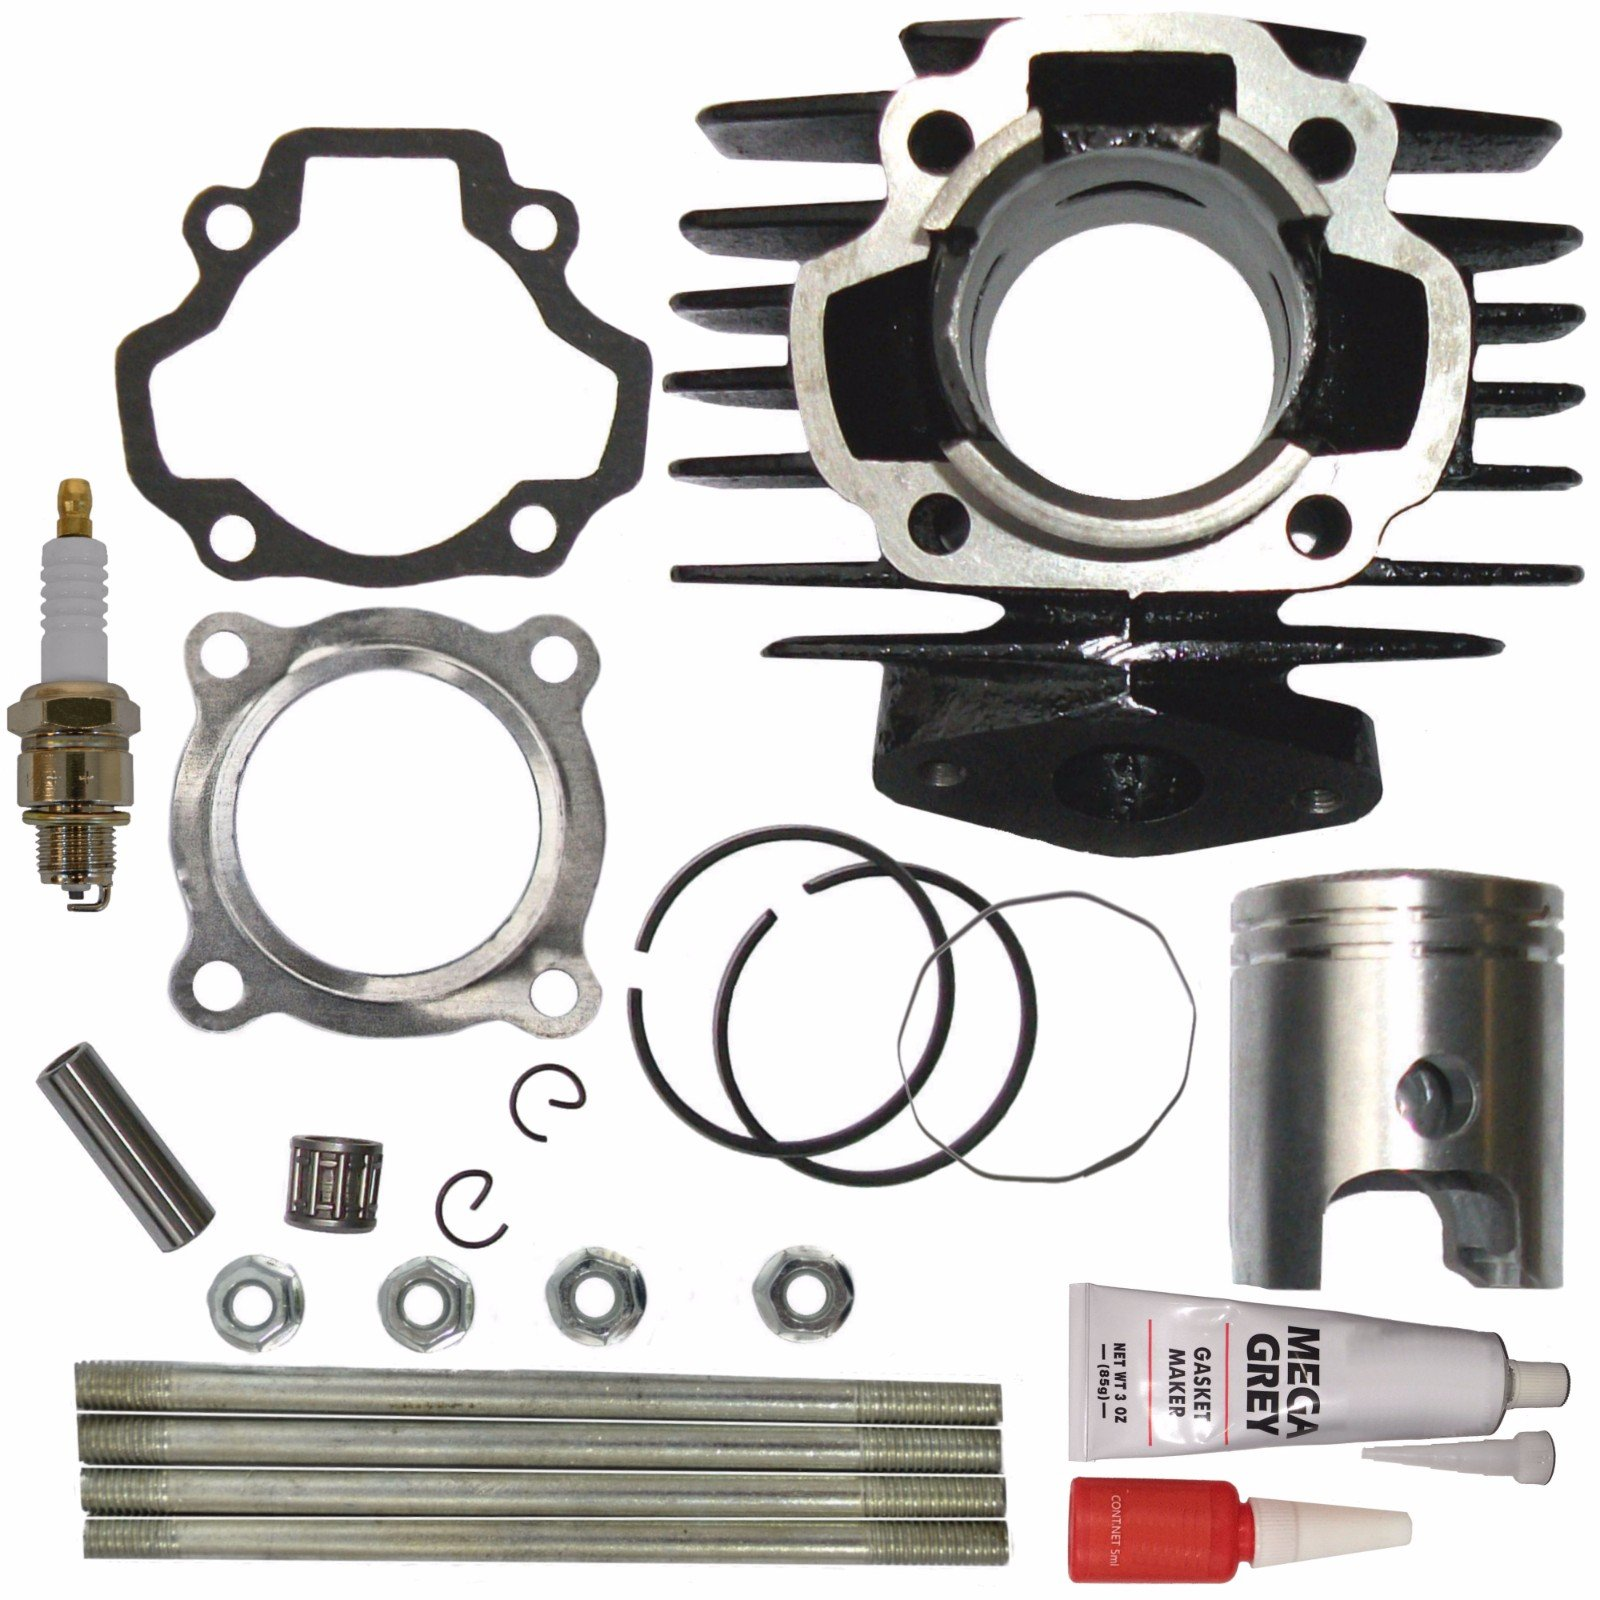 ZOOM ZOOM PARTS Cylinder FITS YAMAHA PW 50 PW50 QT 50 QT50 Piston Ring Gasket Top End Set Kit NEW by Zoom